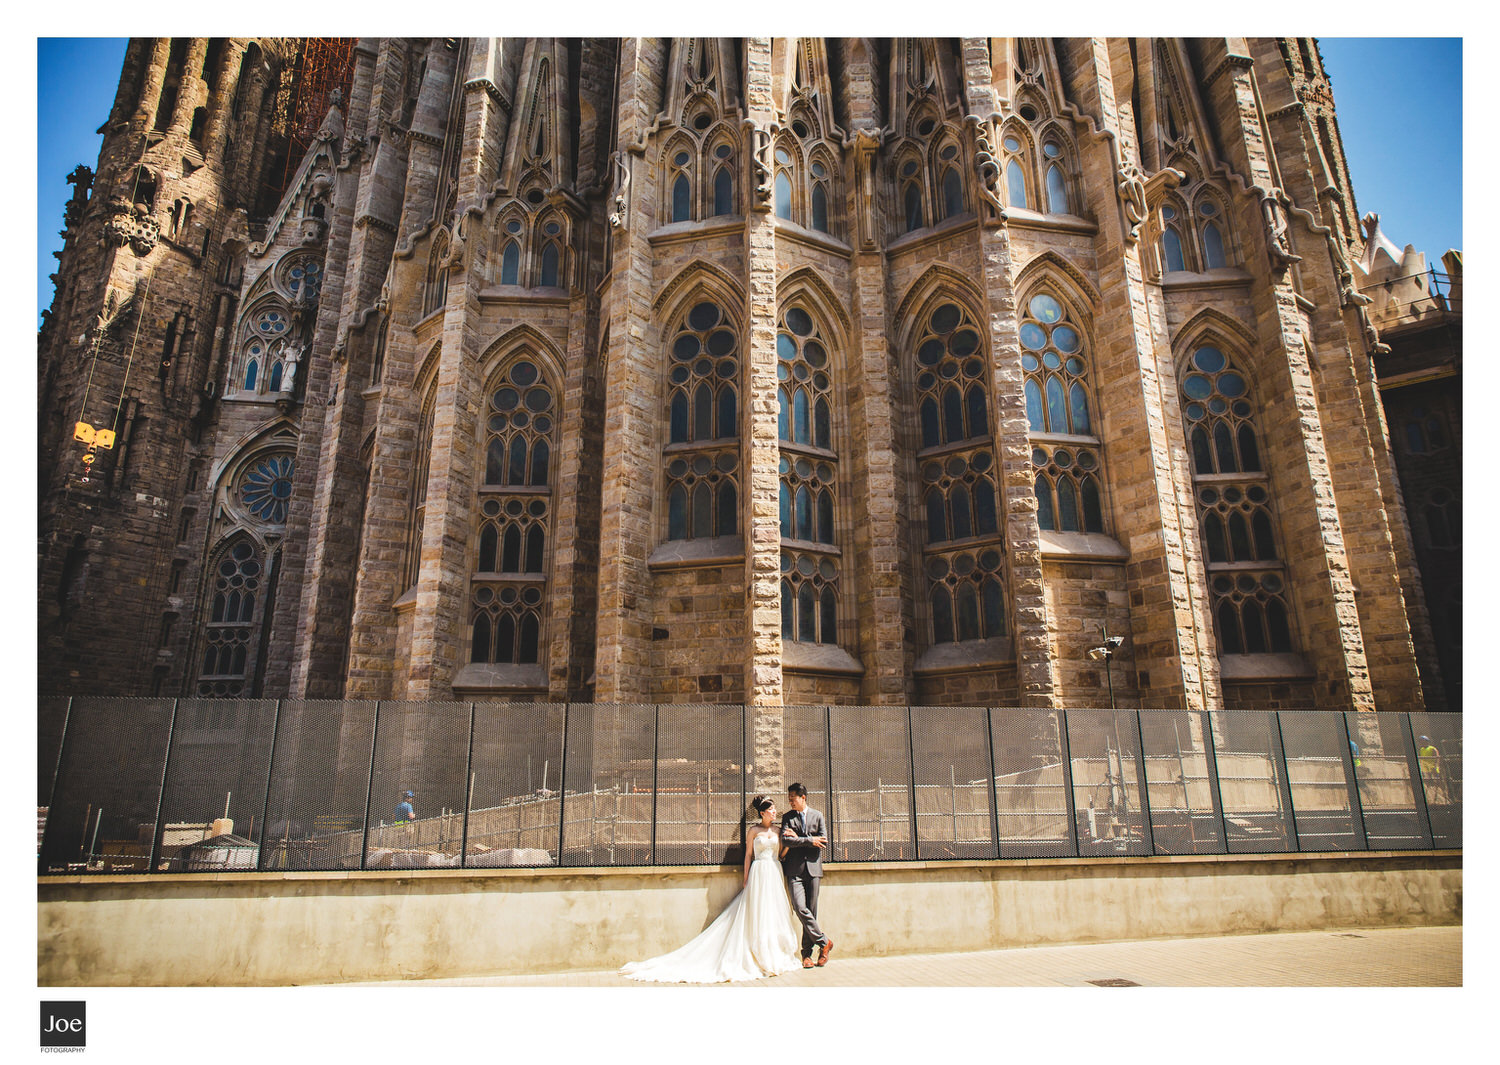 joe-fotography-21-barcelona-sagrada-familia-pre-wedding-linda-colin.jpg